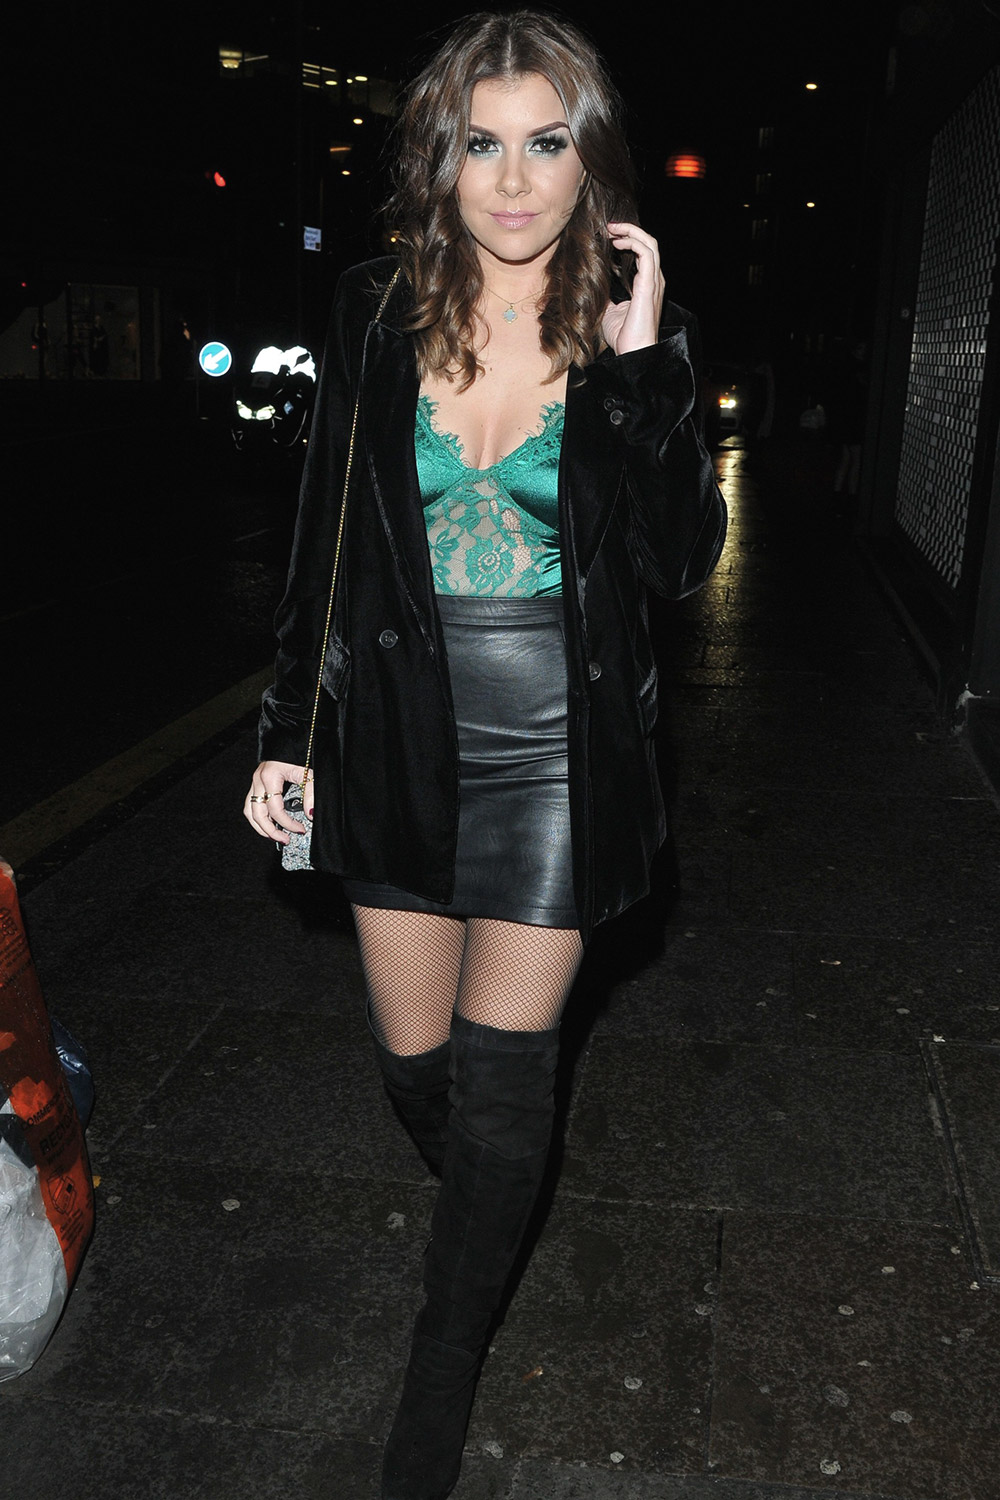 Imogen Thomas arrives at The Never Fully Dressed VIP festive dinner